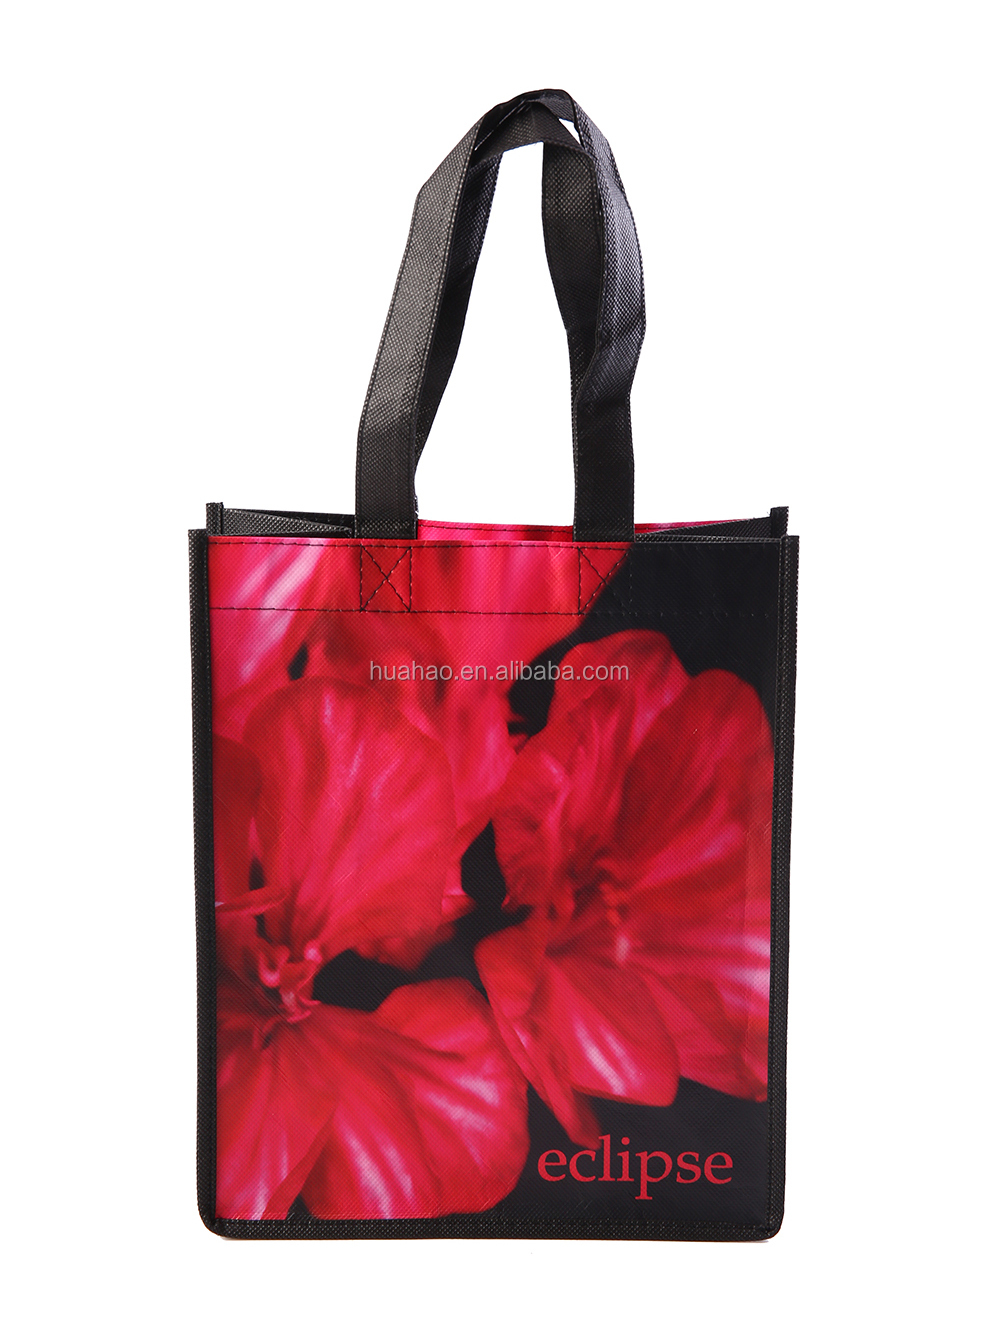 wenzhou new products laminated pp non woven bag for dress